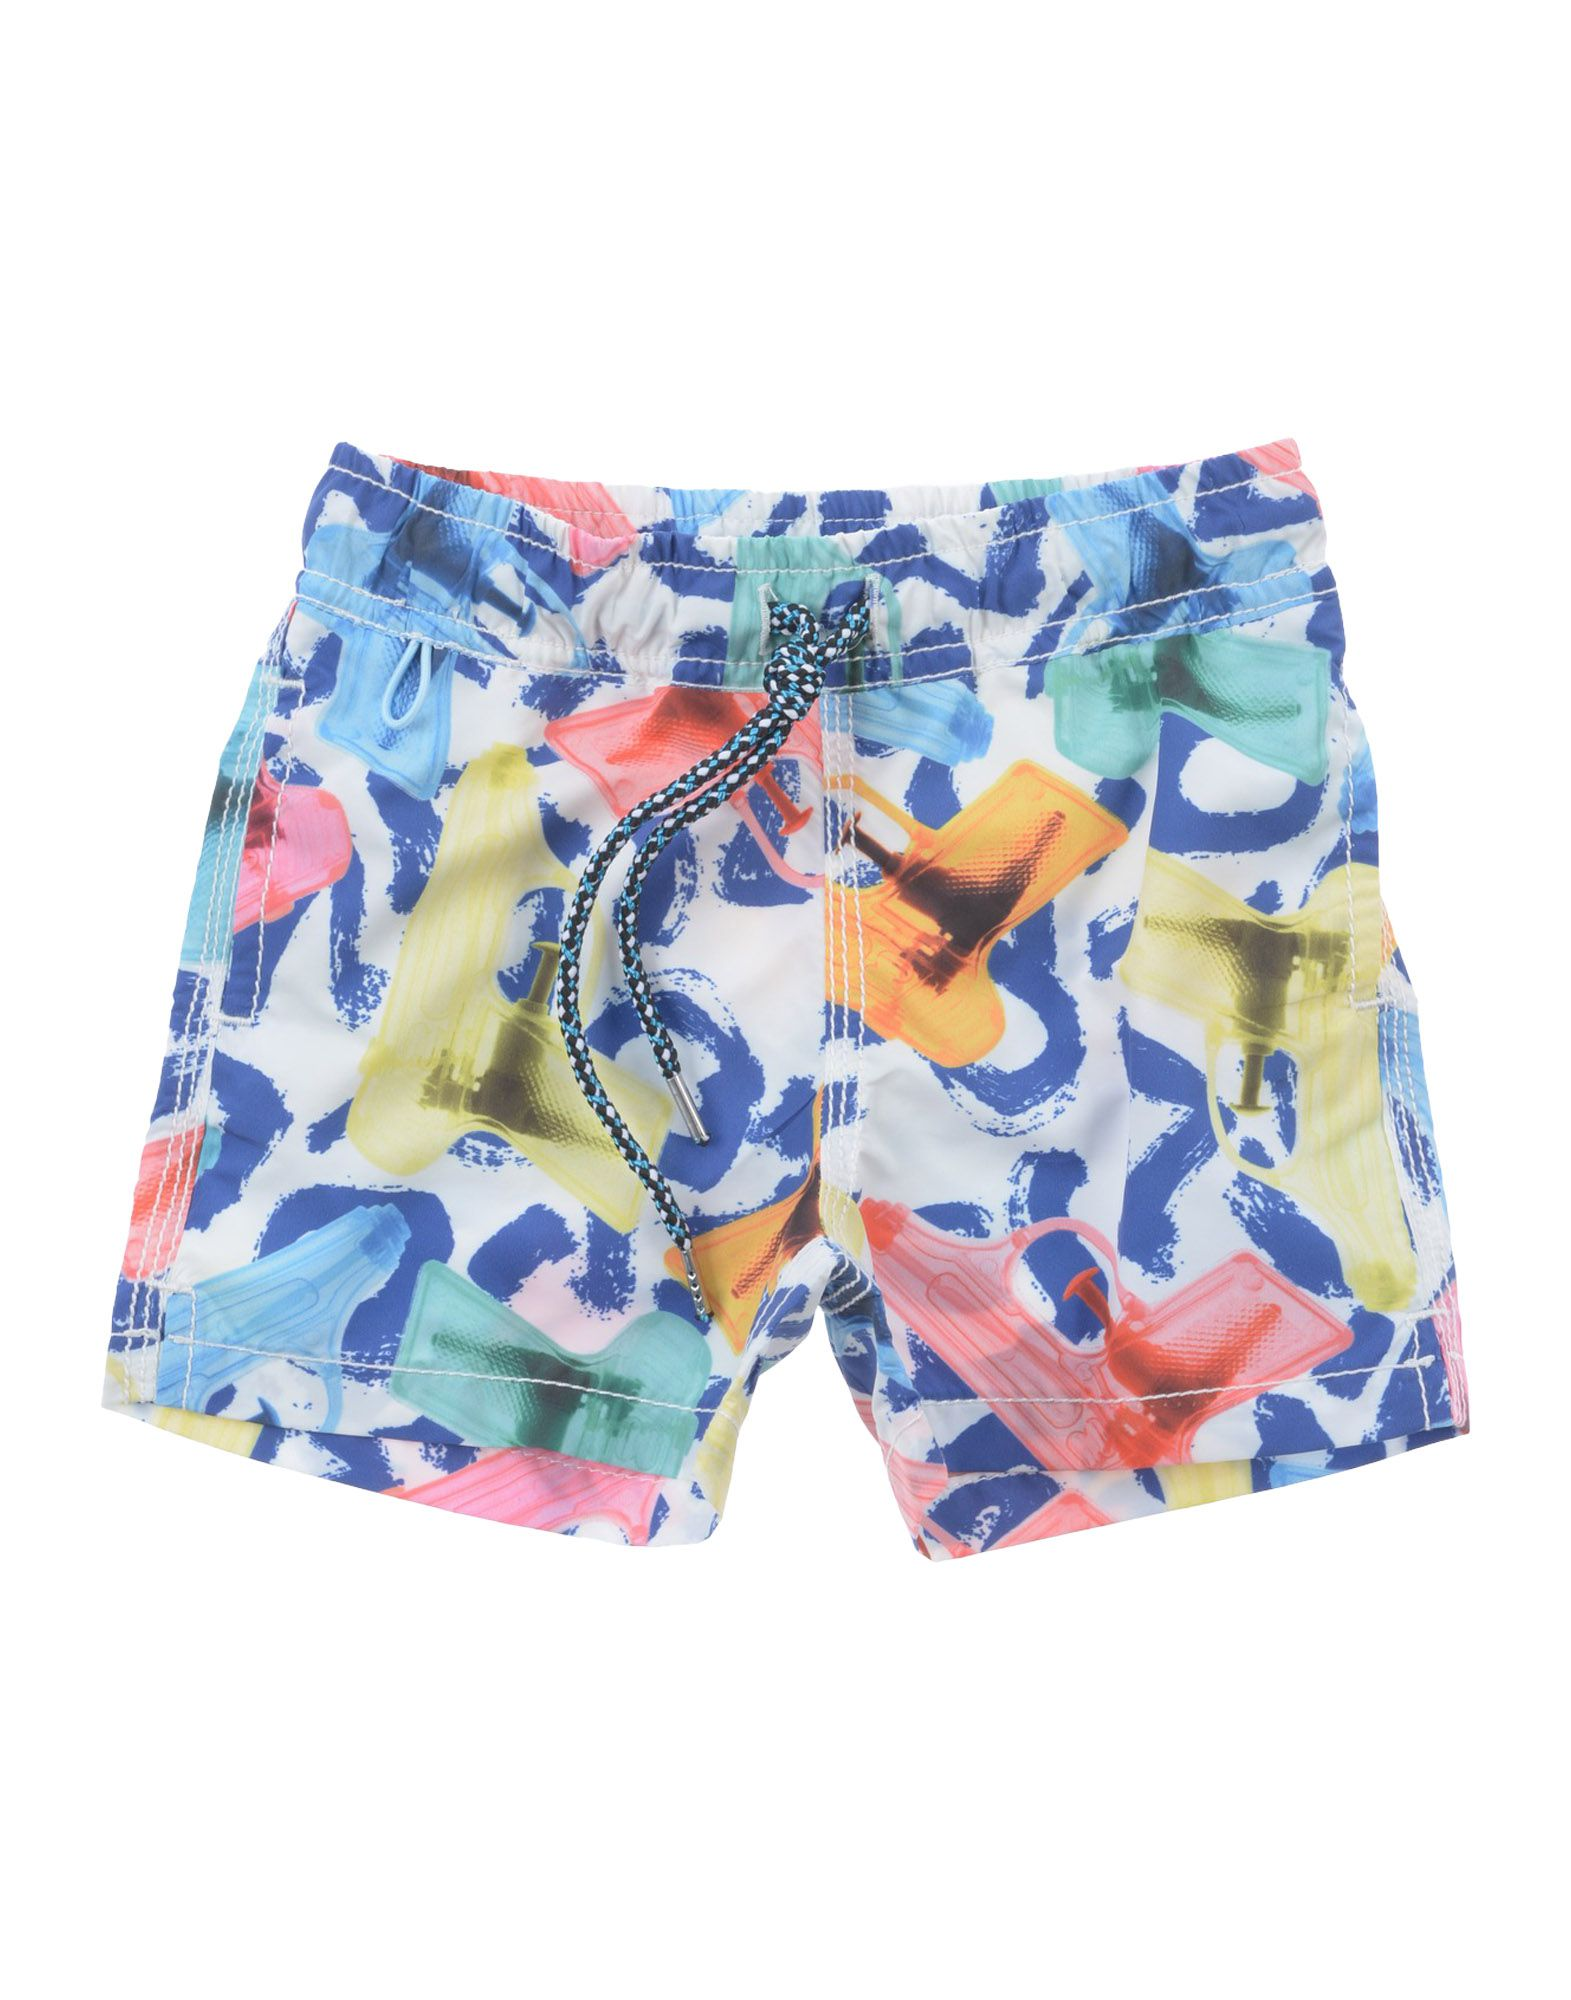 OFFICINA 51 | OFFICINA 51 Swim trunks 47229692 | Goxip